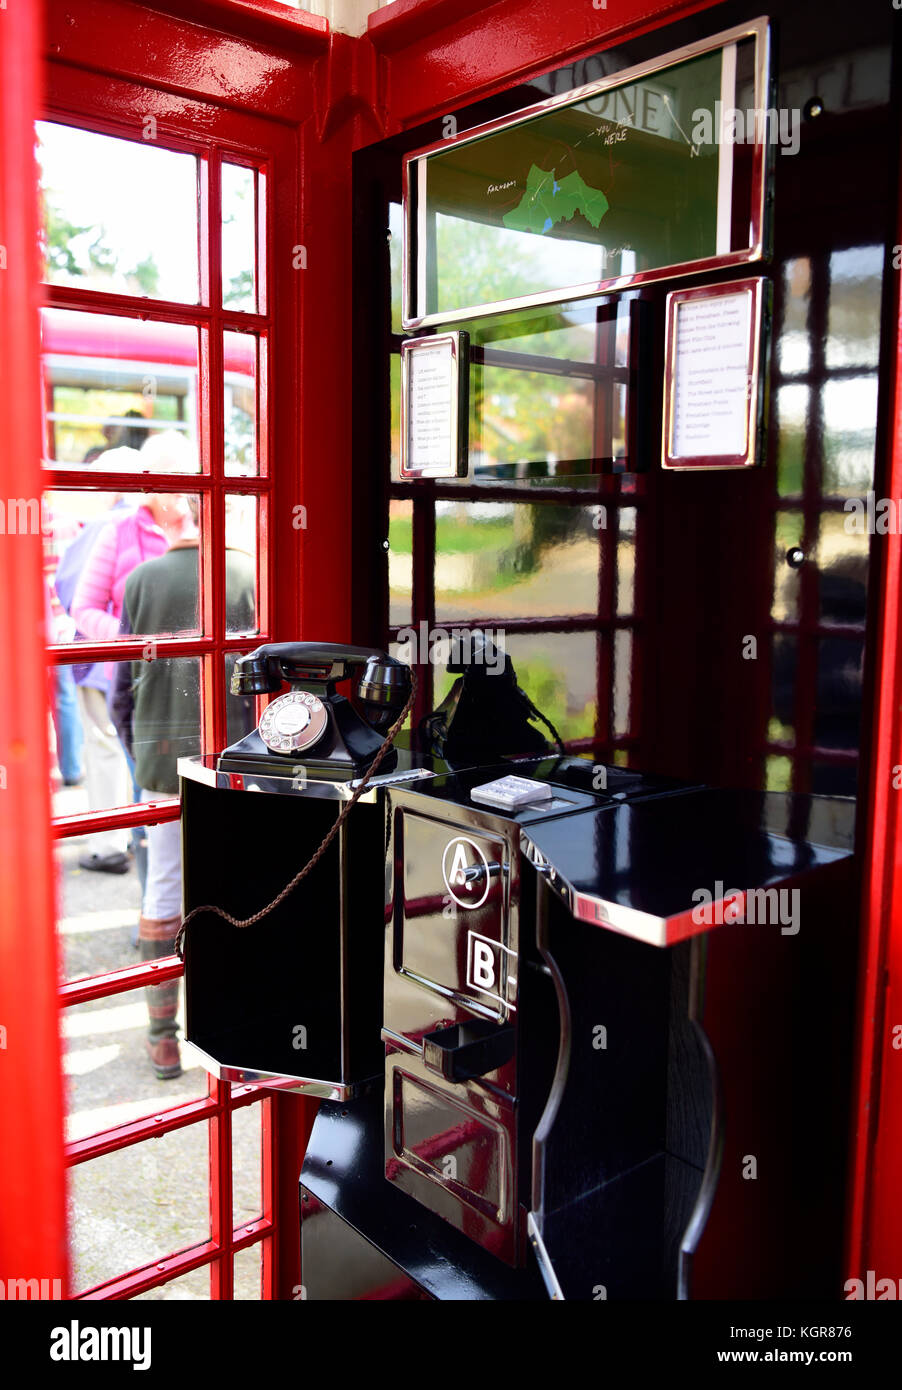 Interior of a refurbished traditional red phone box which has been converted into a small visitors centre. The interior - Stock Image